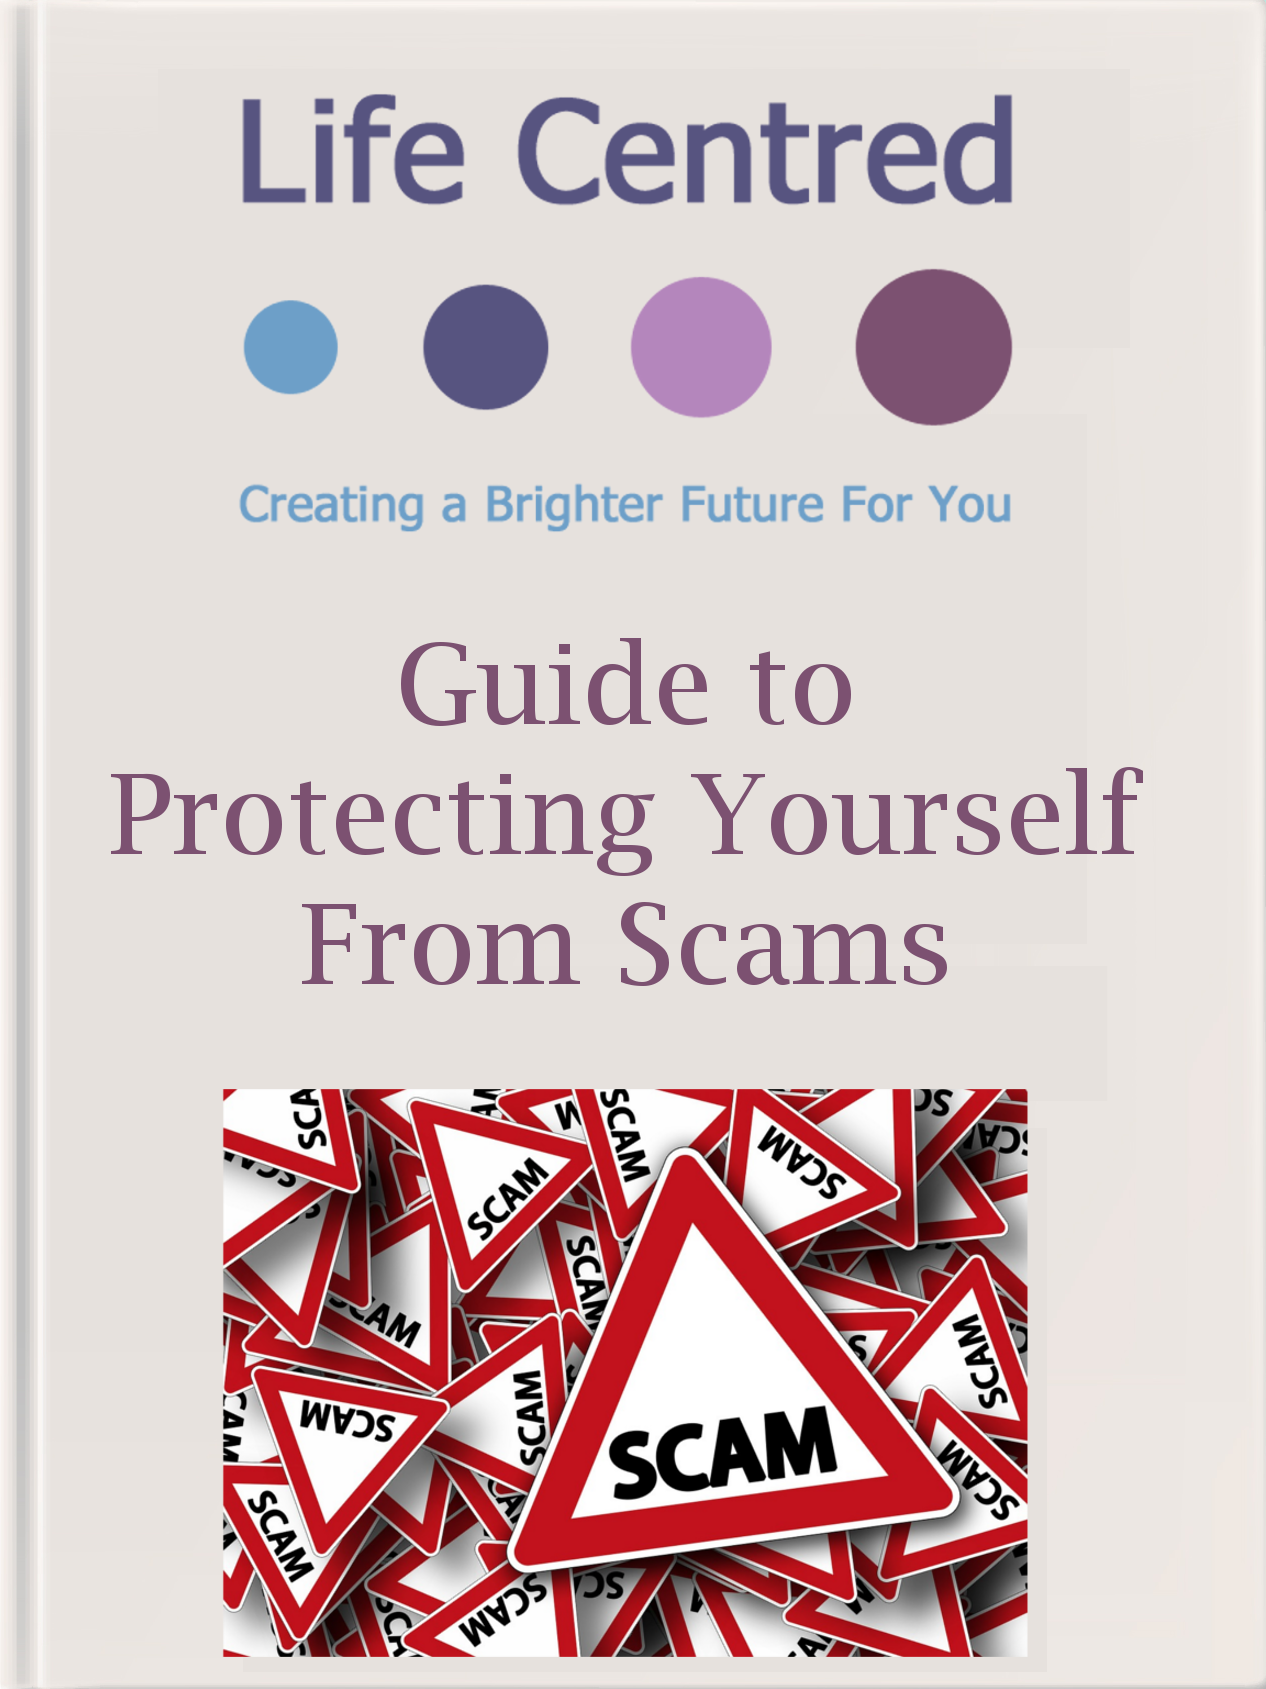 Download our Guide to Protecting Yourself From Scams